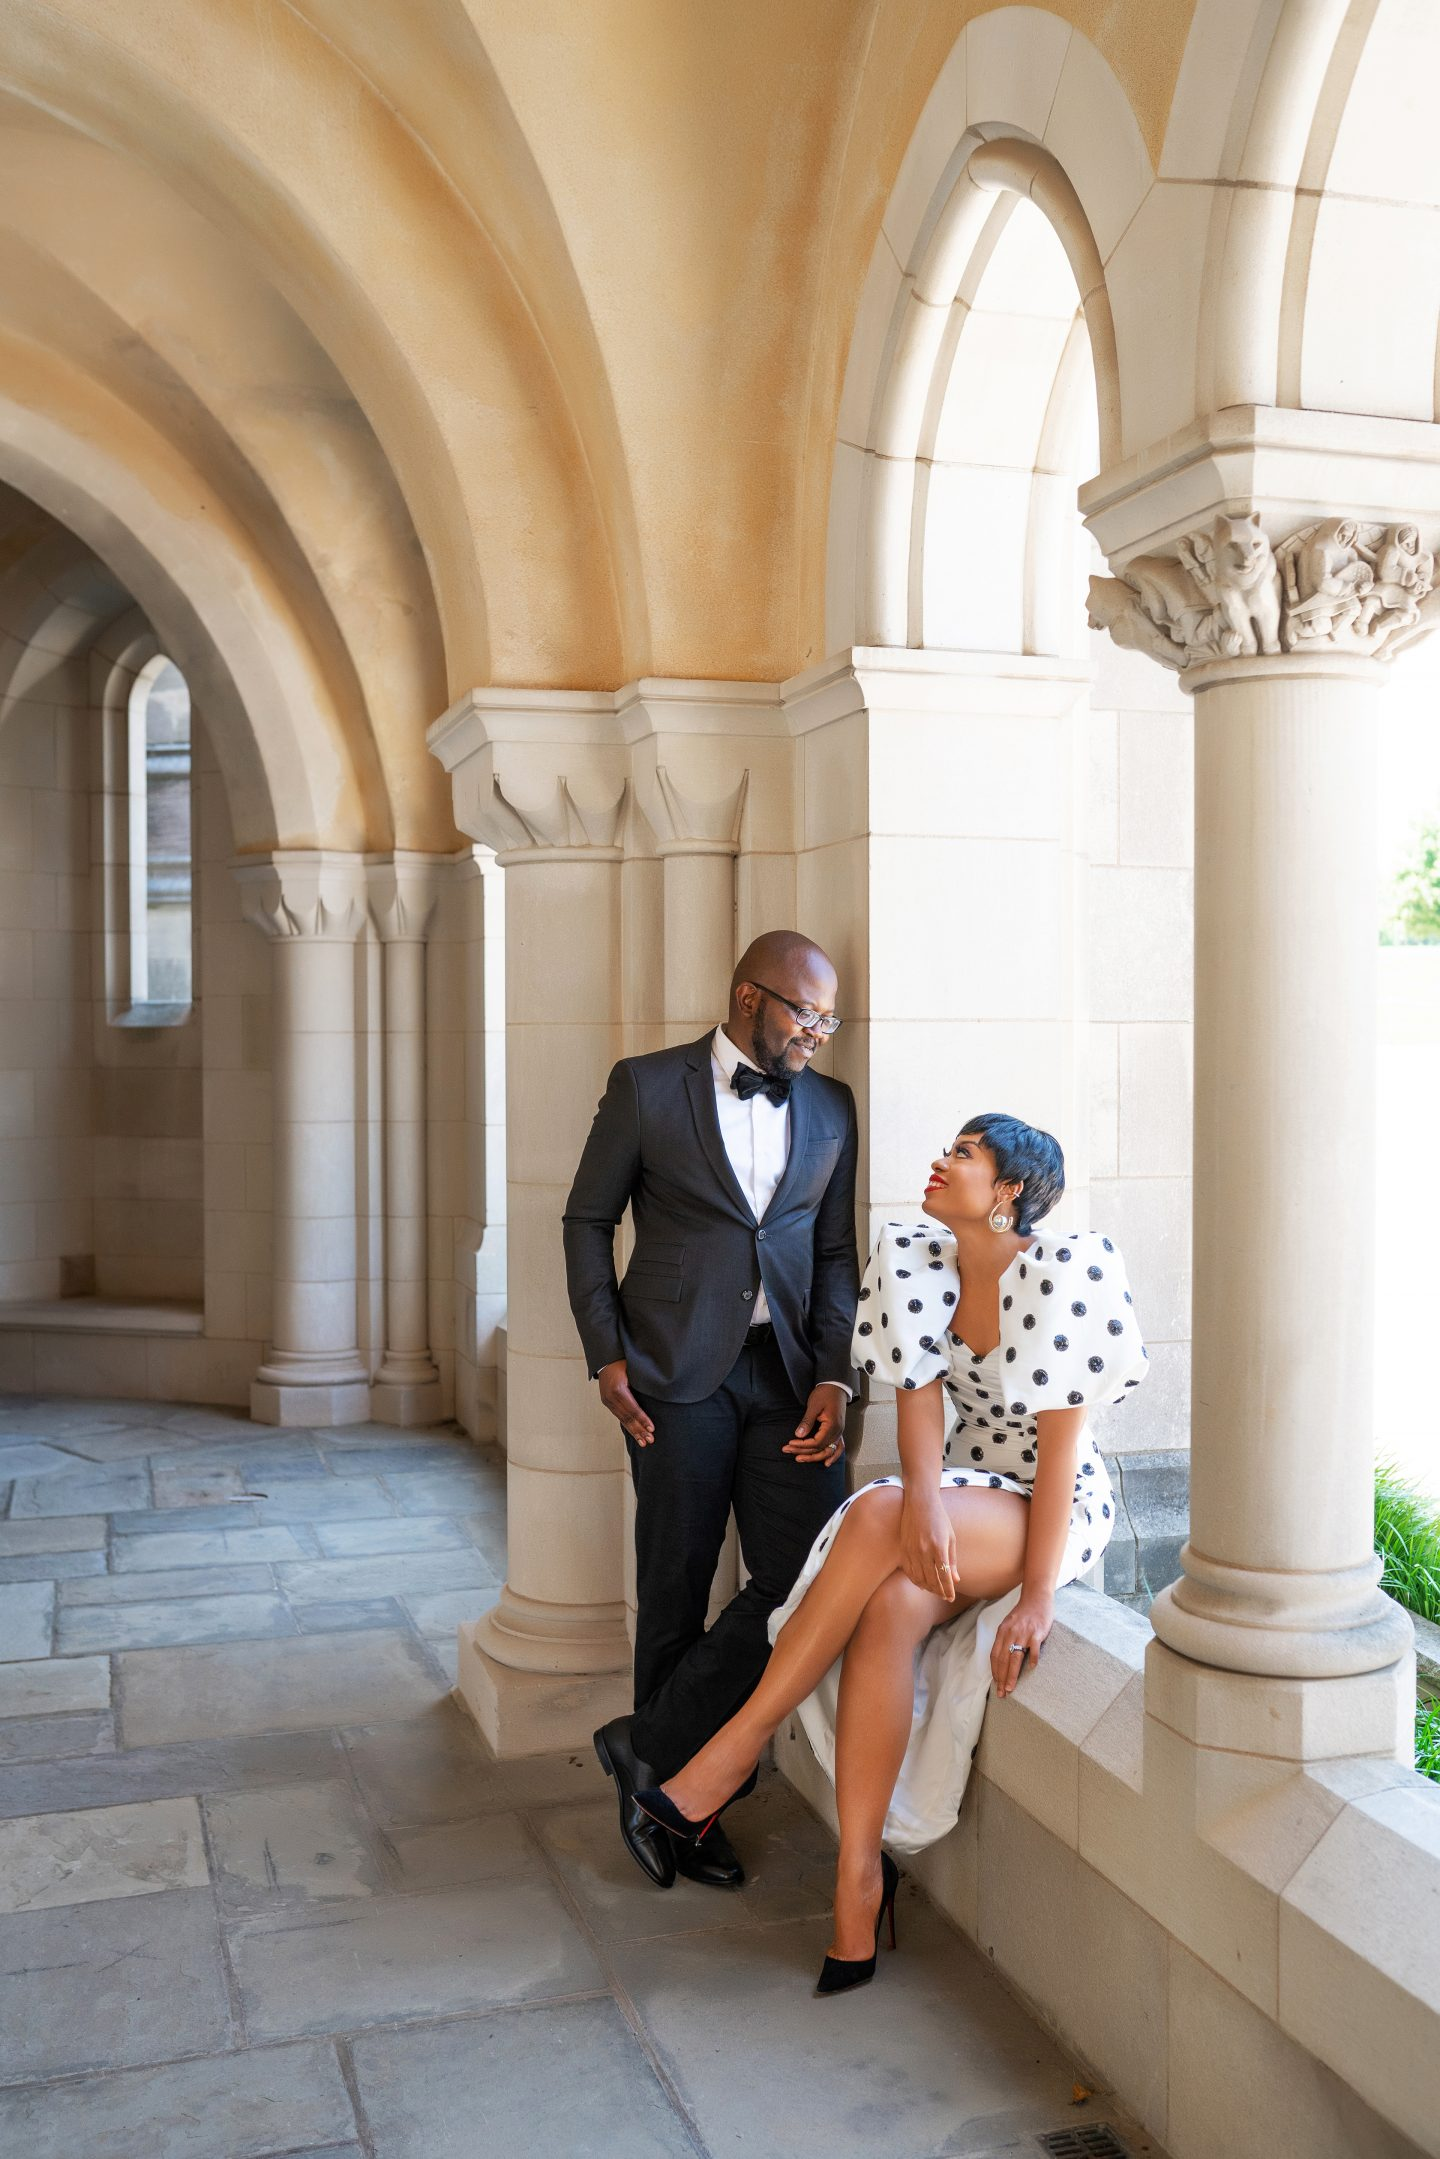 stella-adewunmi-of-jadore-fashion-blog-shares-Last-minute-ideas-for-valentines-day-date-night